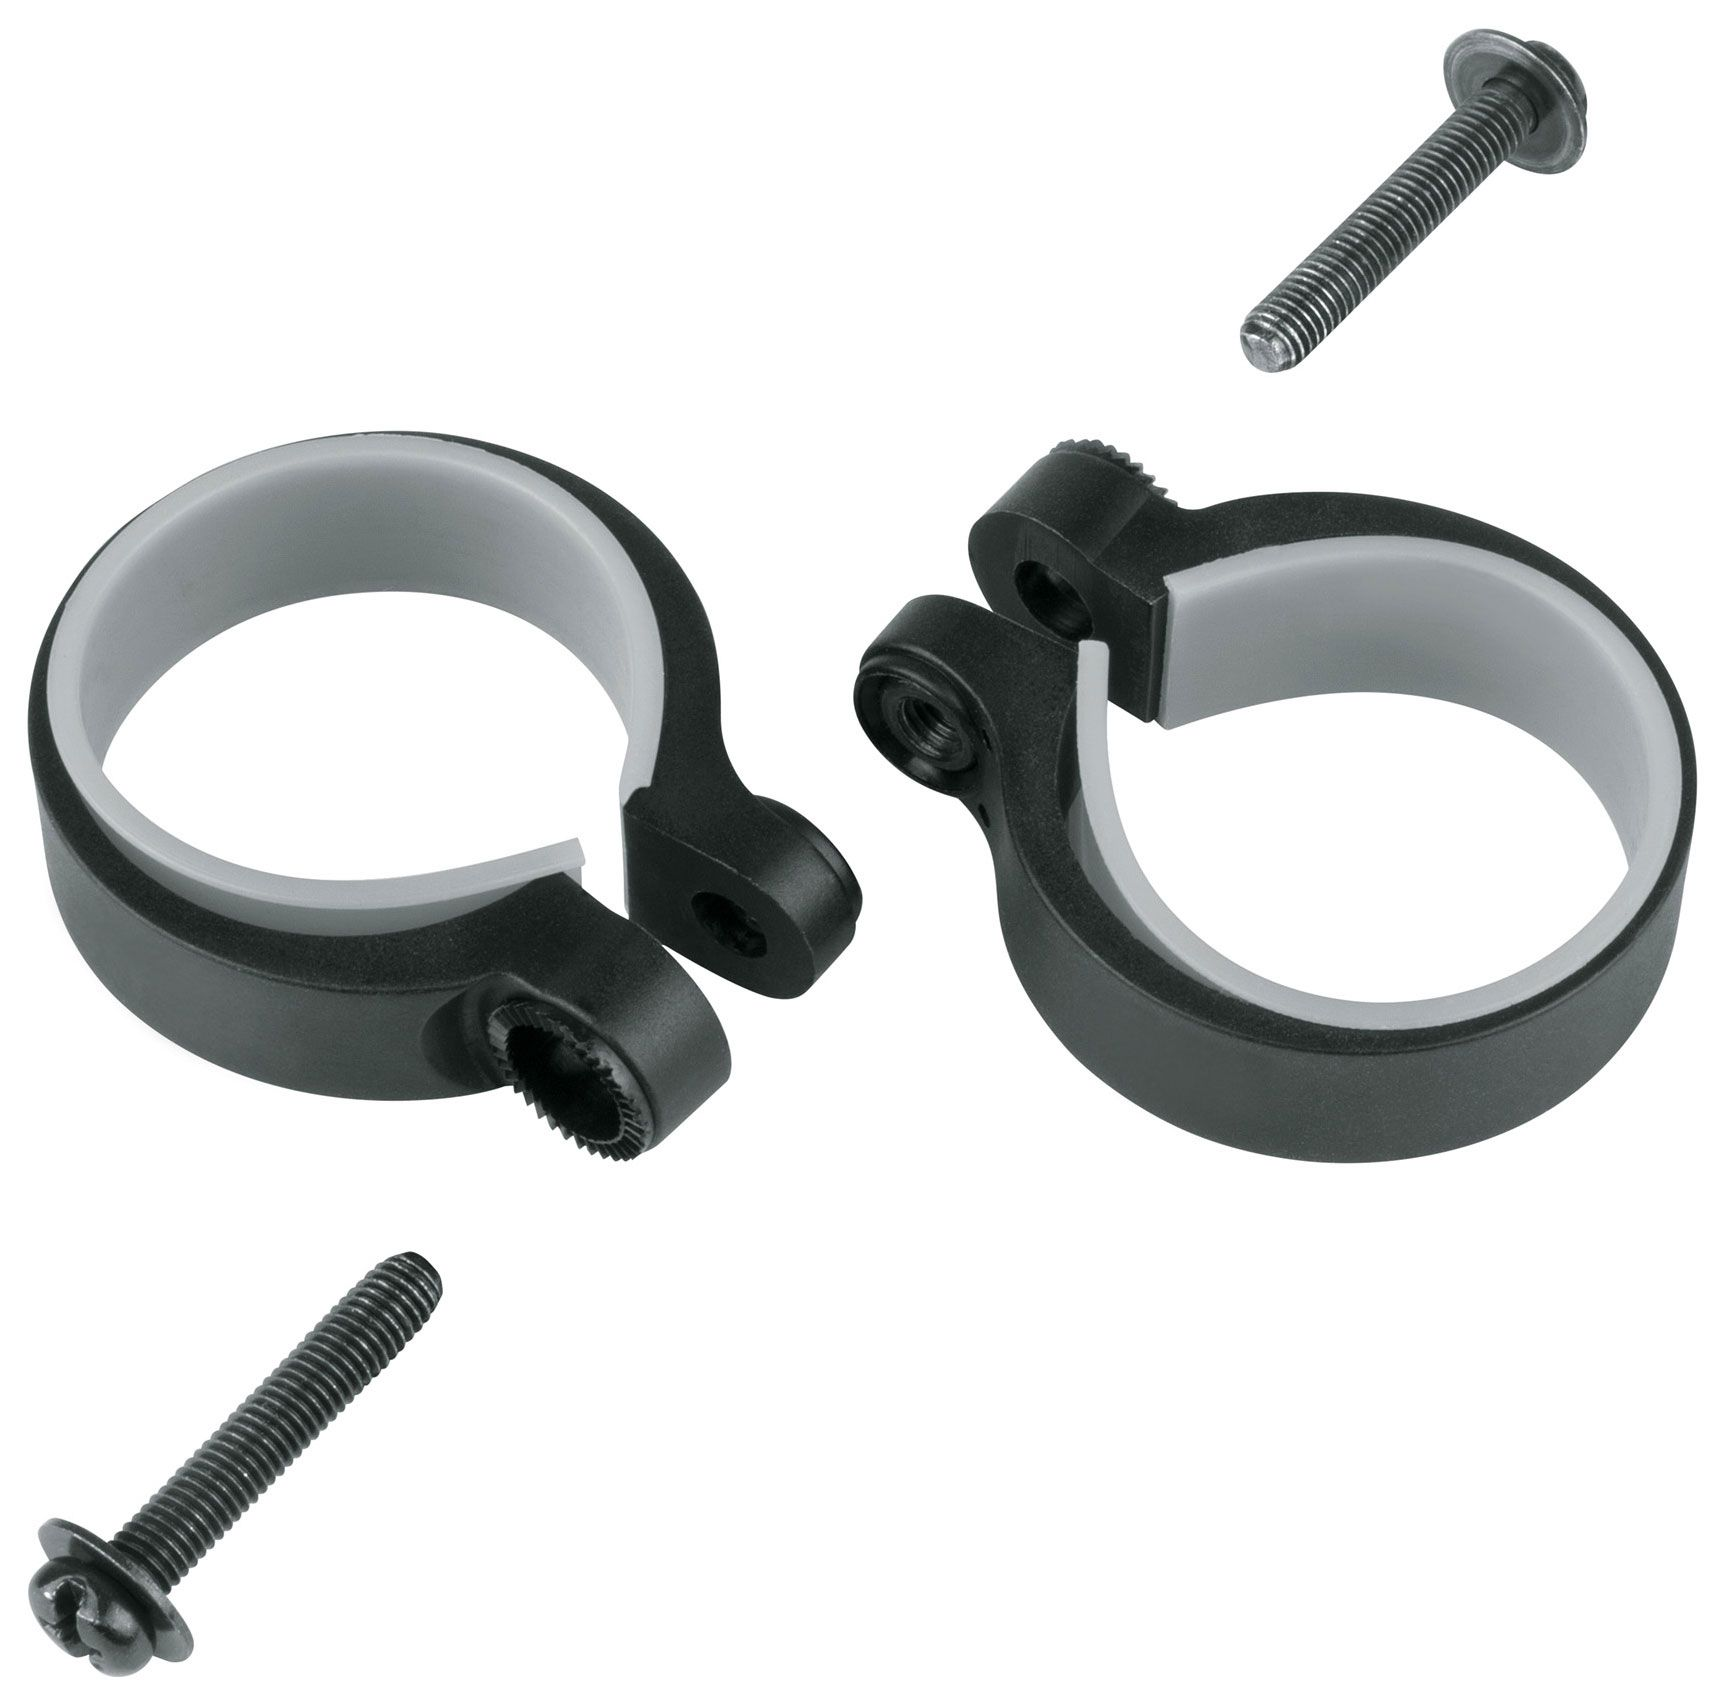 Запчасть SKS Stay Mounting Clamps 2 Pcs. 31,0 - 34,5Mm (SKS-11483) аксессуар sks velo 65 mountain 29 set incl u stays sks 11471